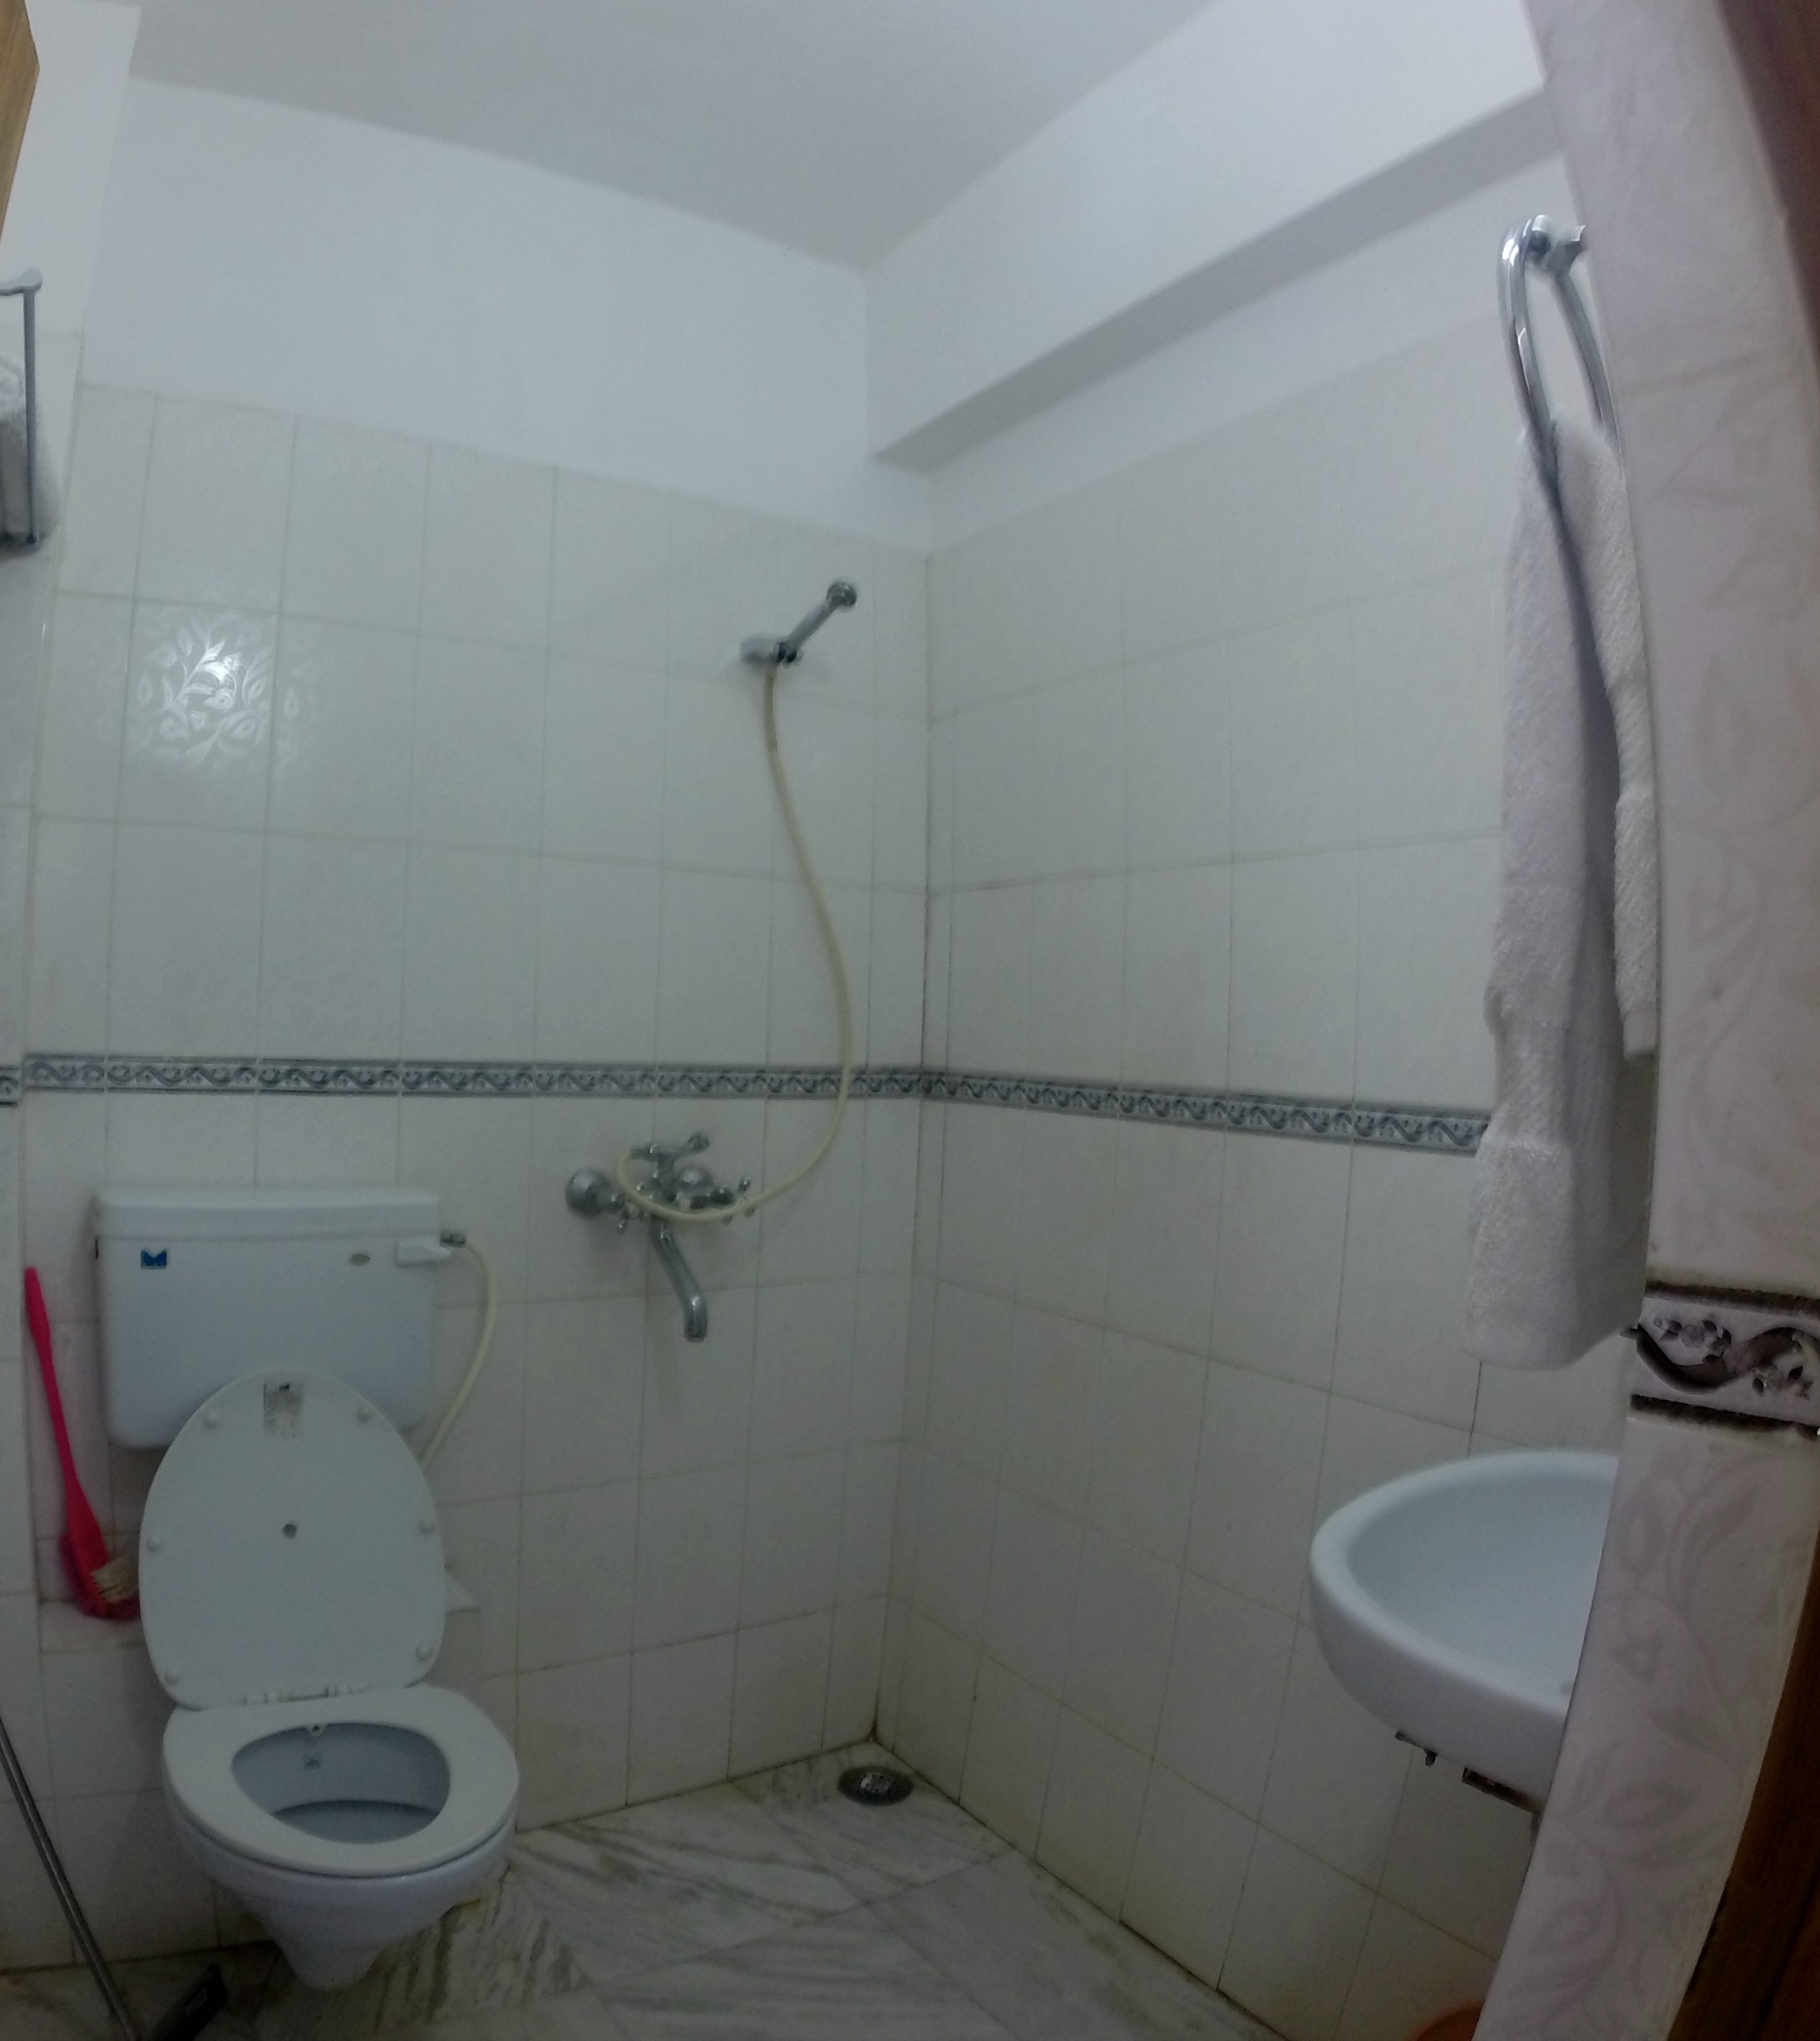 Budget Travel and Travel Hacking: What is a toilet shower you ask?? This. THIS is a toilet shower!